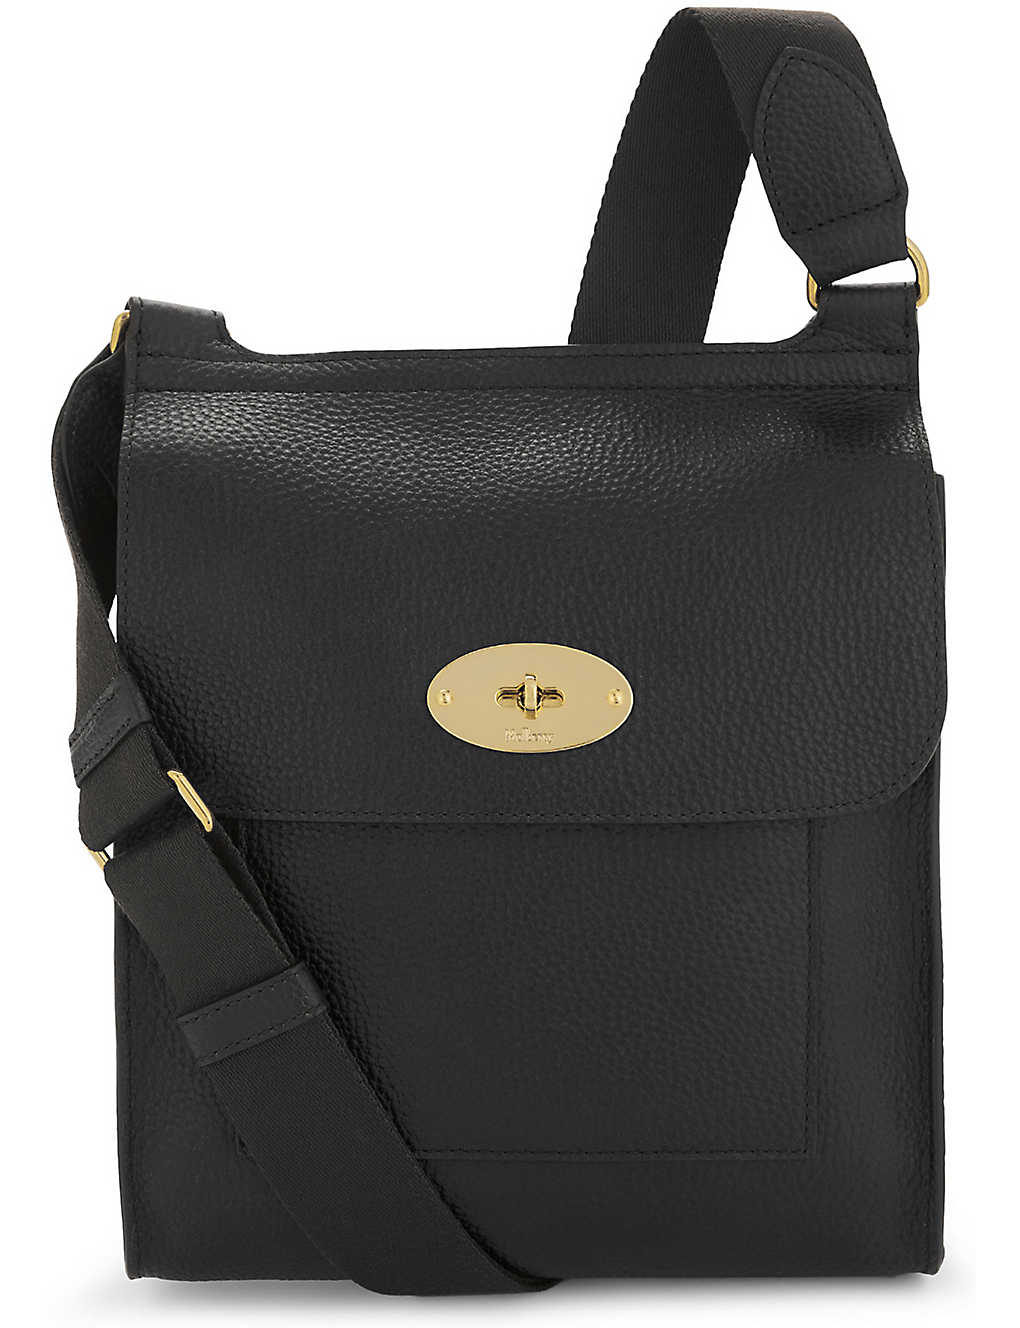 MULBERRY: Antony grained leather cross-body bag